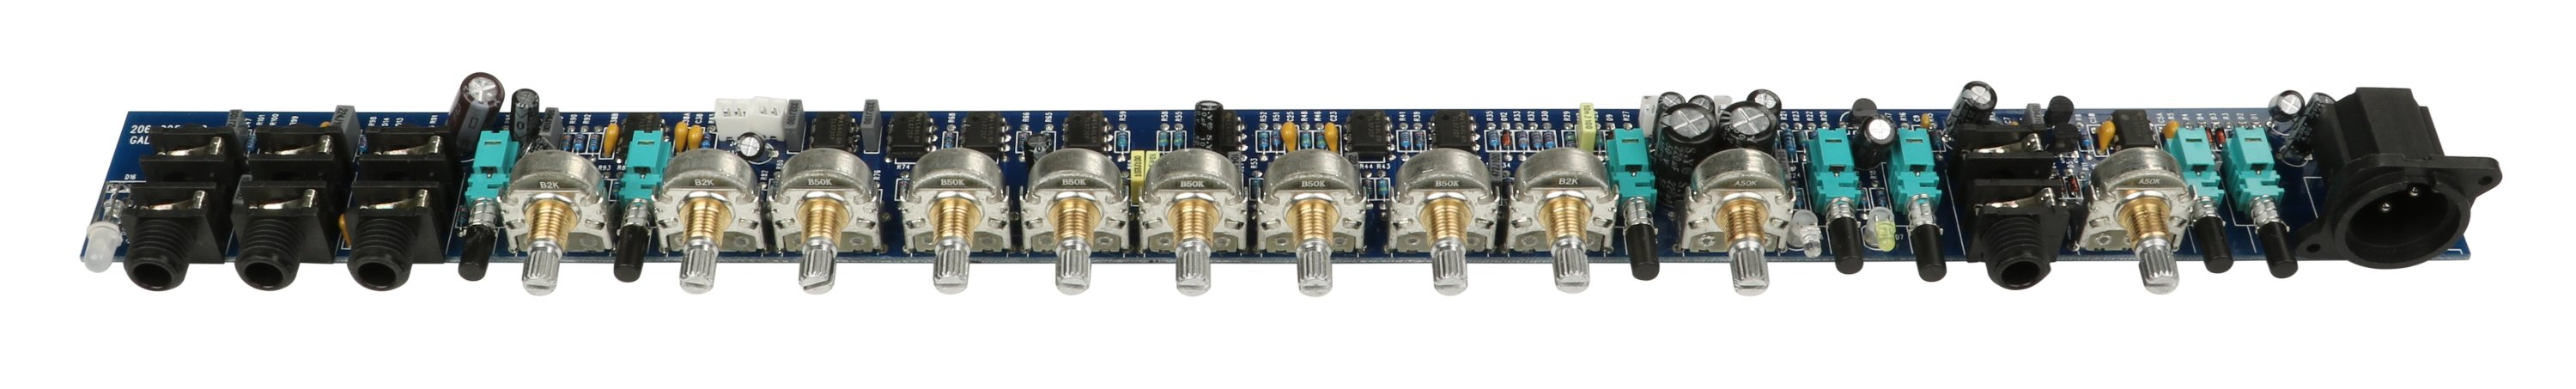 Preamp PCB Assembly for 1001RB-II, 700RB, 700RB-II